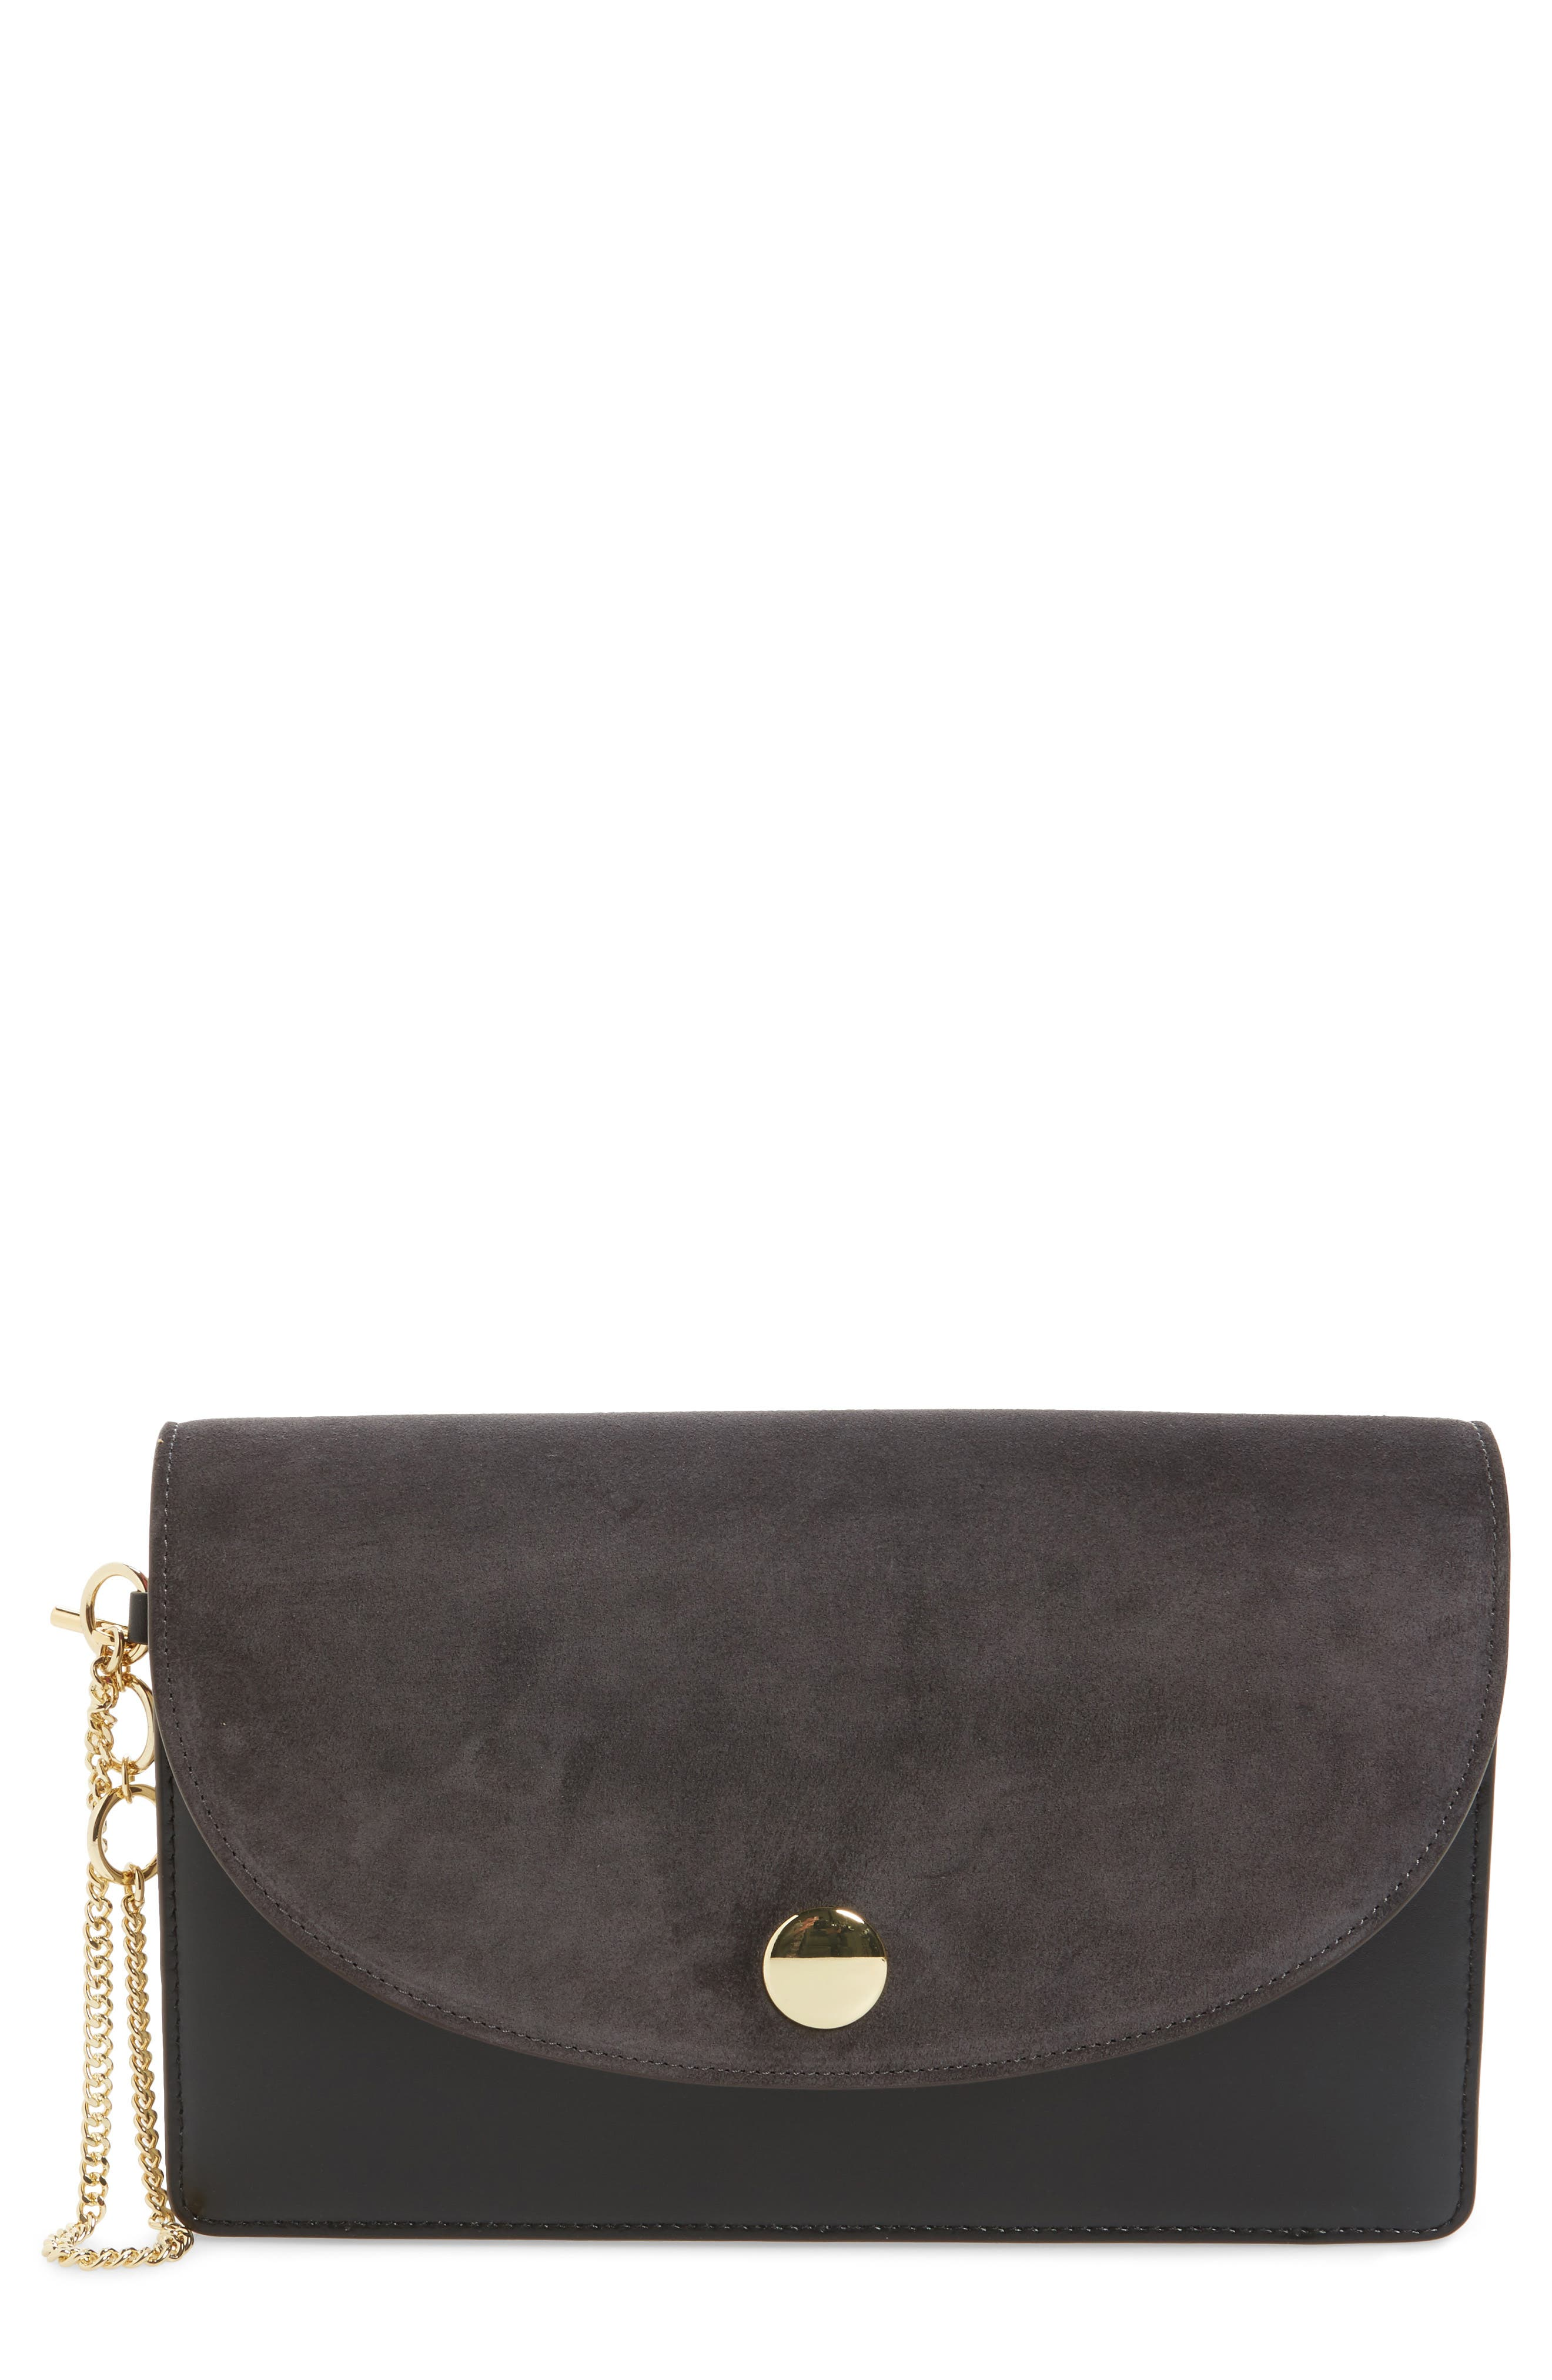 Diane von Furstenberg Convertible Leather Saddle Clutch